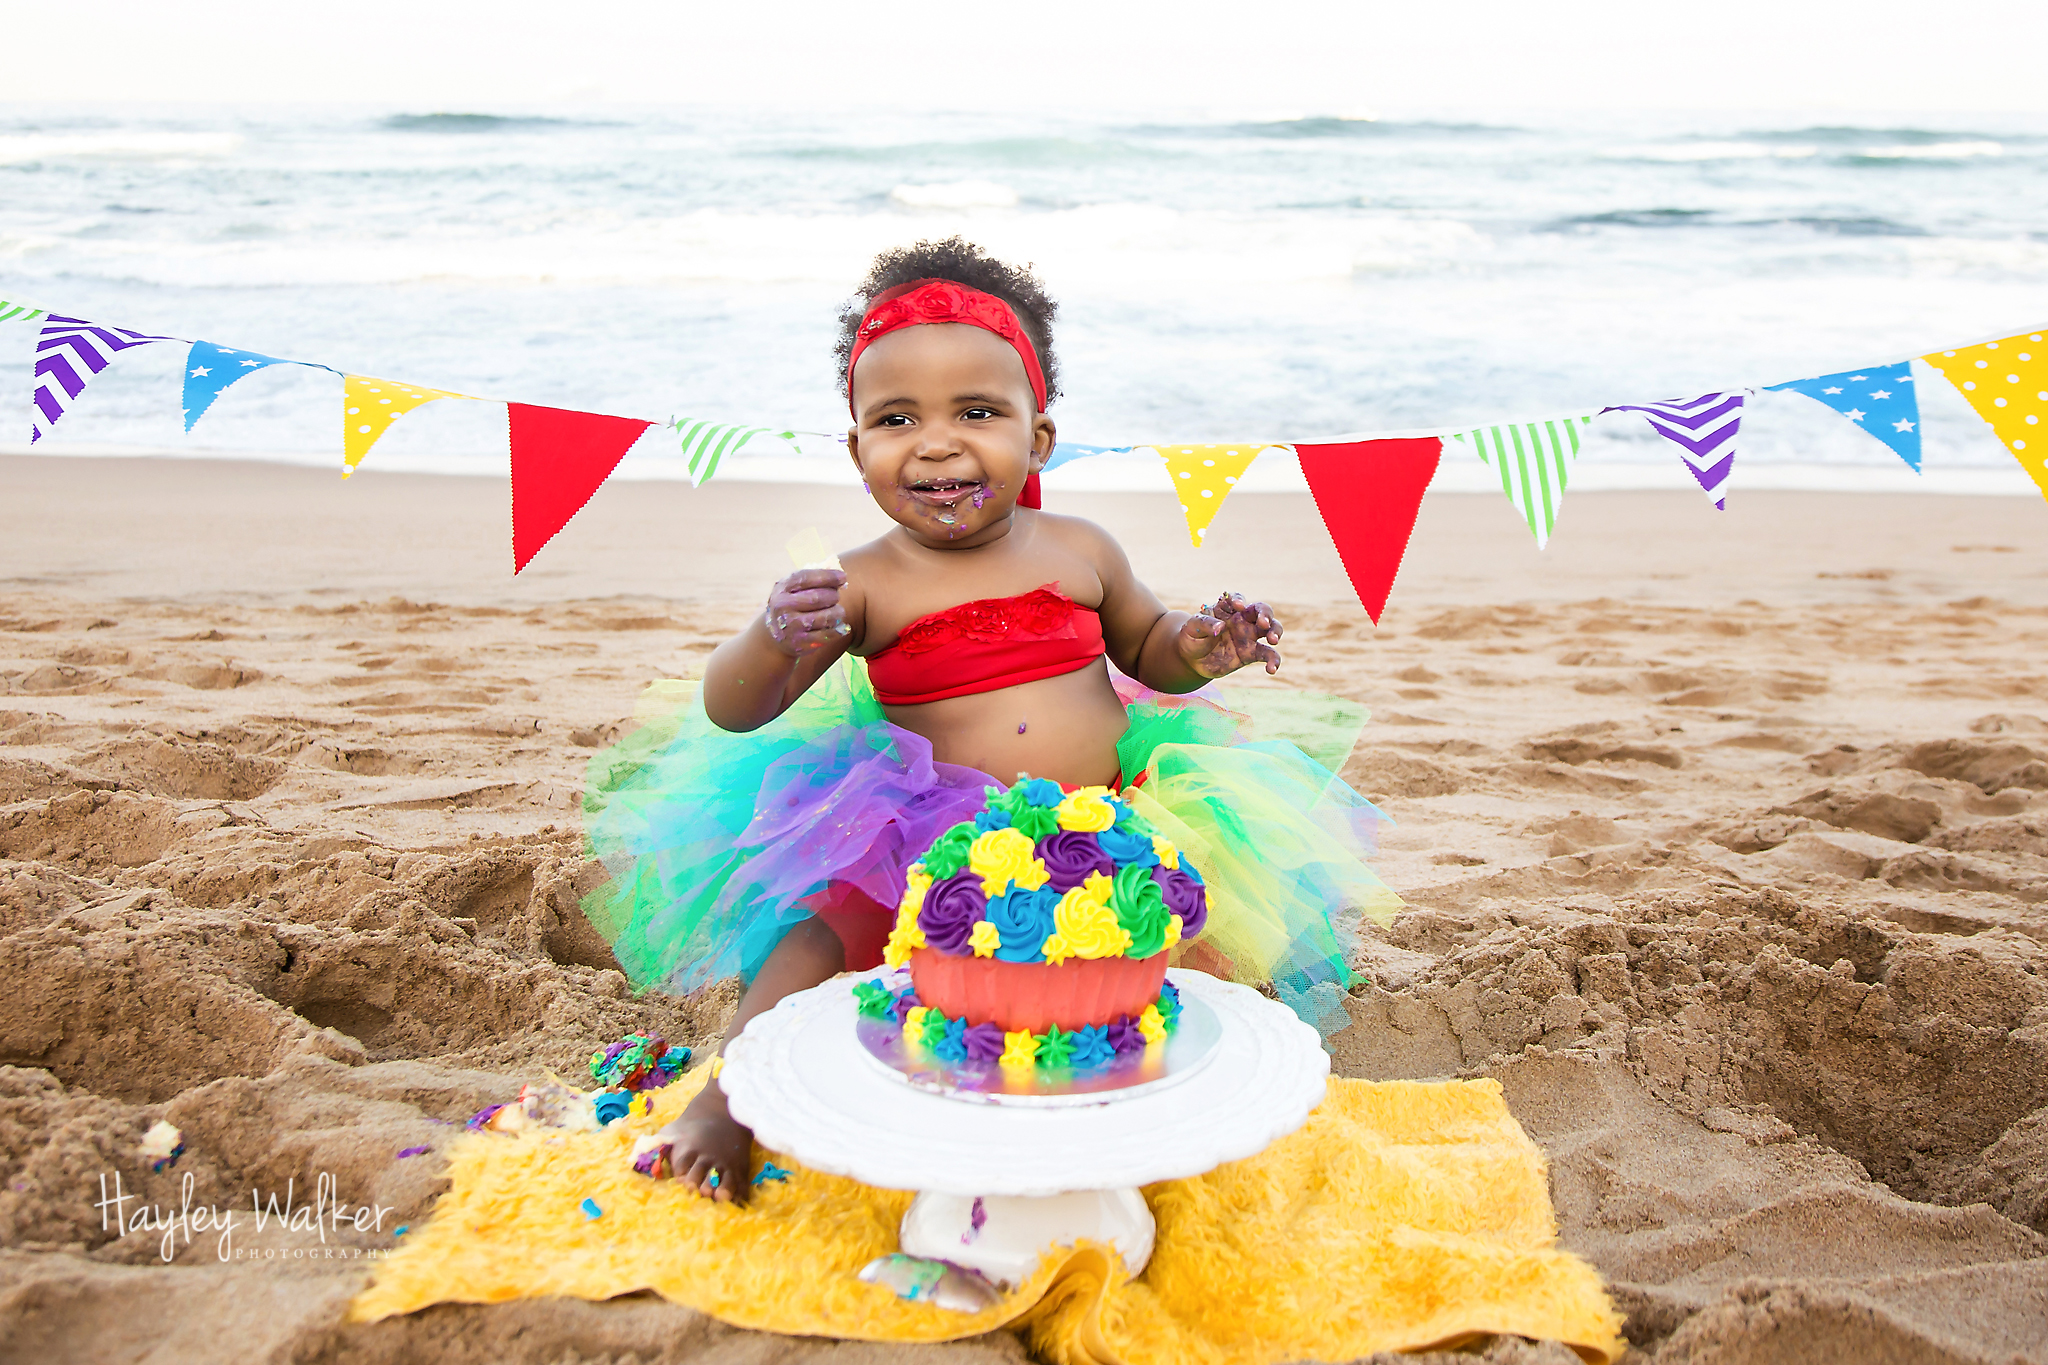 009-hayley-walker-photography-hillcrest-durban-photographer-family-photoshoot-beach-cakesmash